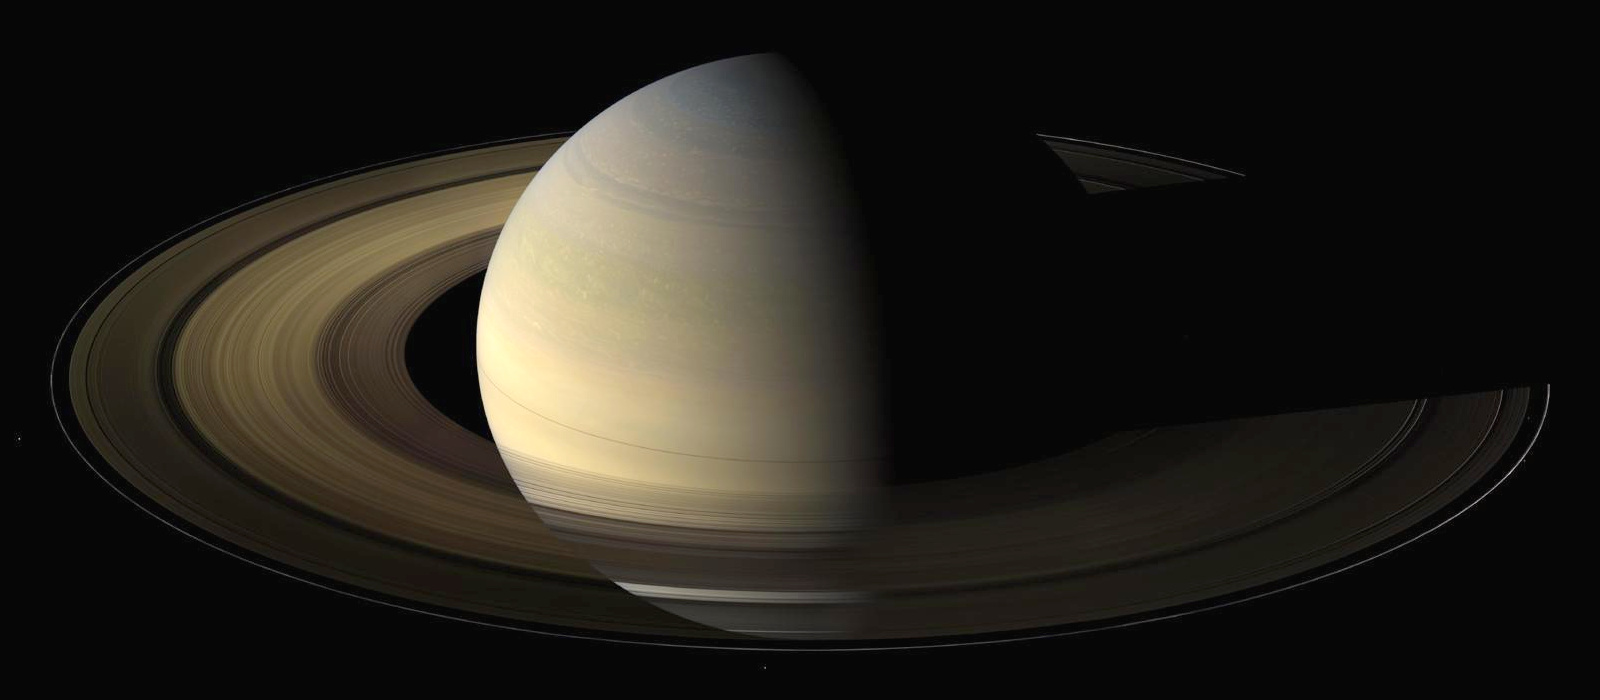 The planet Saturn, viewed by NASA's Cassini spacecraft during its 2009 equinox. Data on how the rings cooled during this time provide insights about the nature of the ring particles. Image credit: NASA/JPL/Space Science Institute.